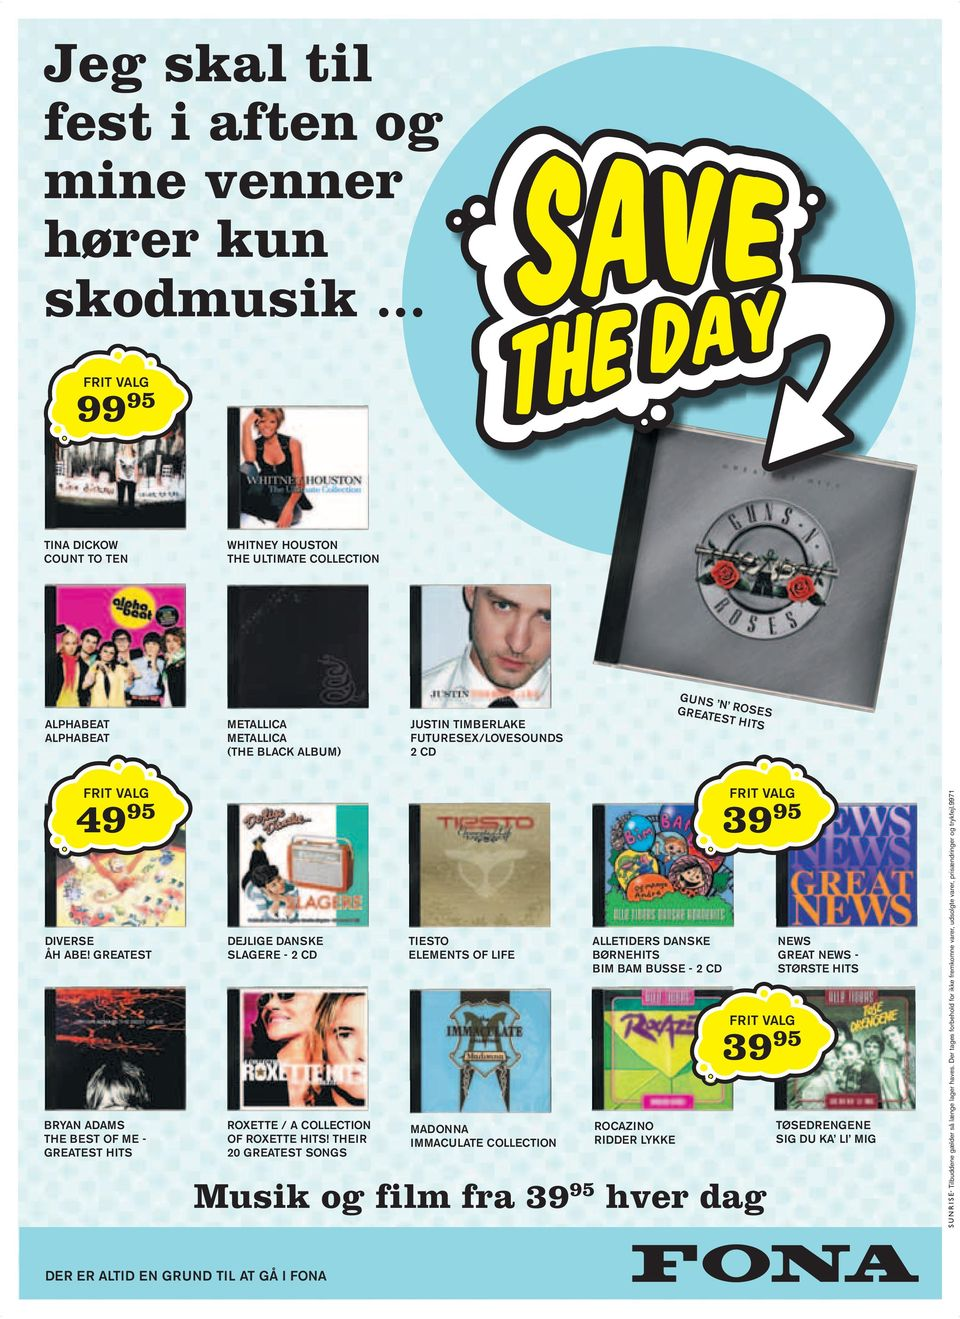 GREATEST HITS FRIT VALG 49 95 DIVERSE ÅH ABE! GREATEST BRYAN ADAMS THE BEST OF ME - GREATEST HITS DEJLIGE DANSKE SLAGERE - 2 CD ROXETTE / A COLLECTION OF ROXETTE HITS!